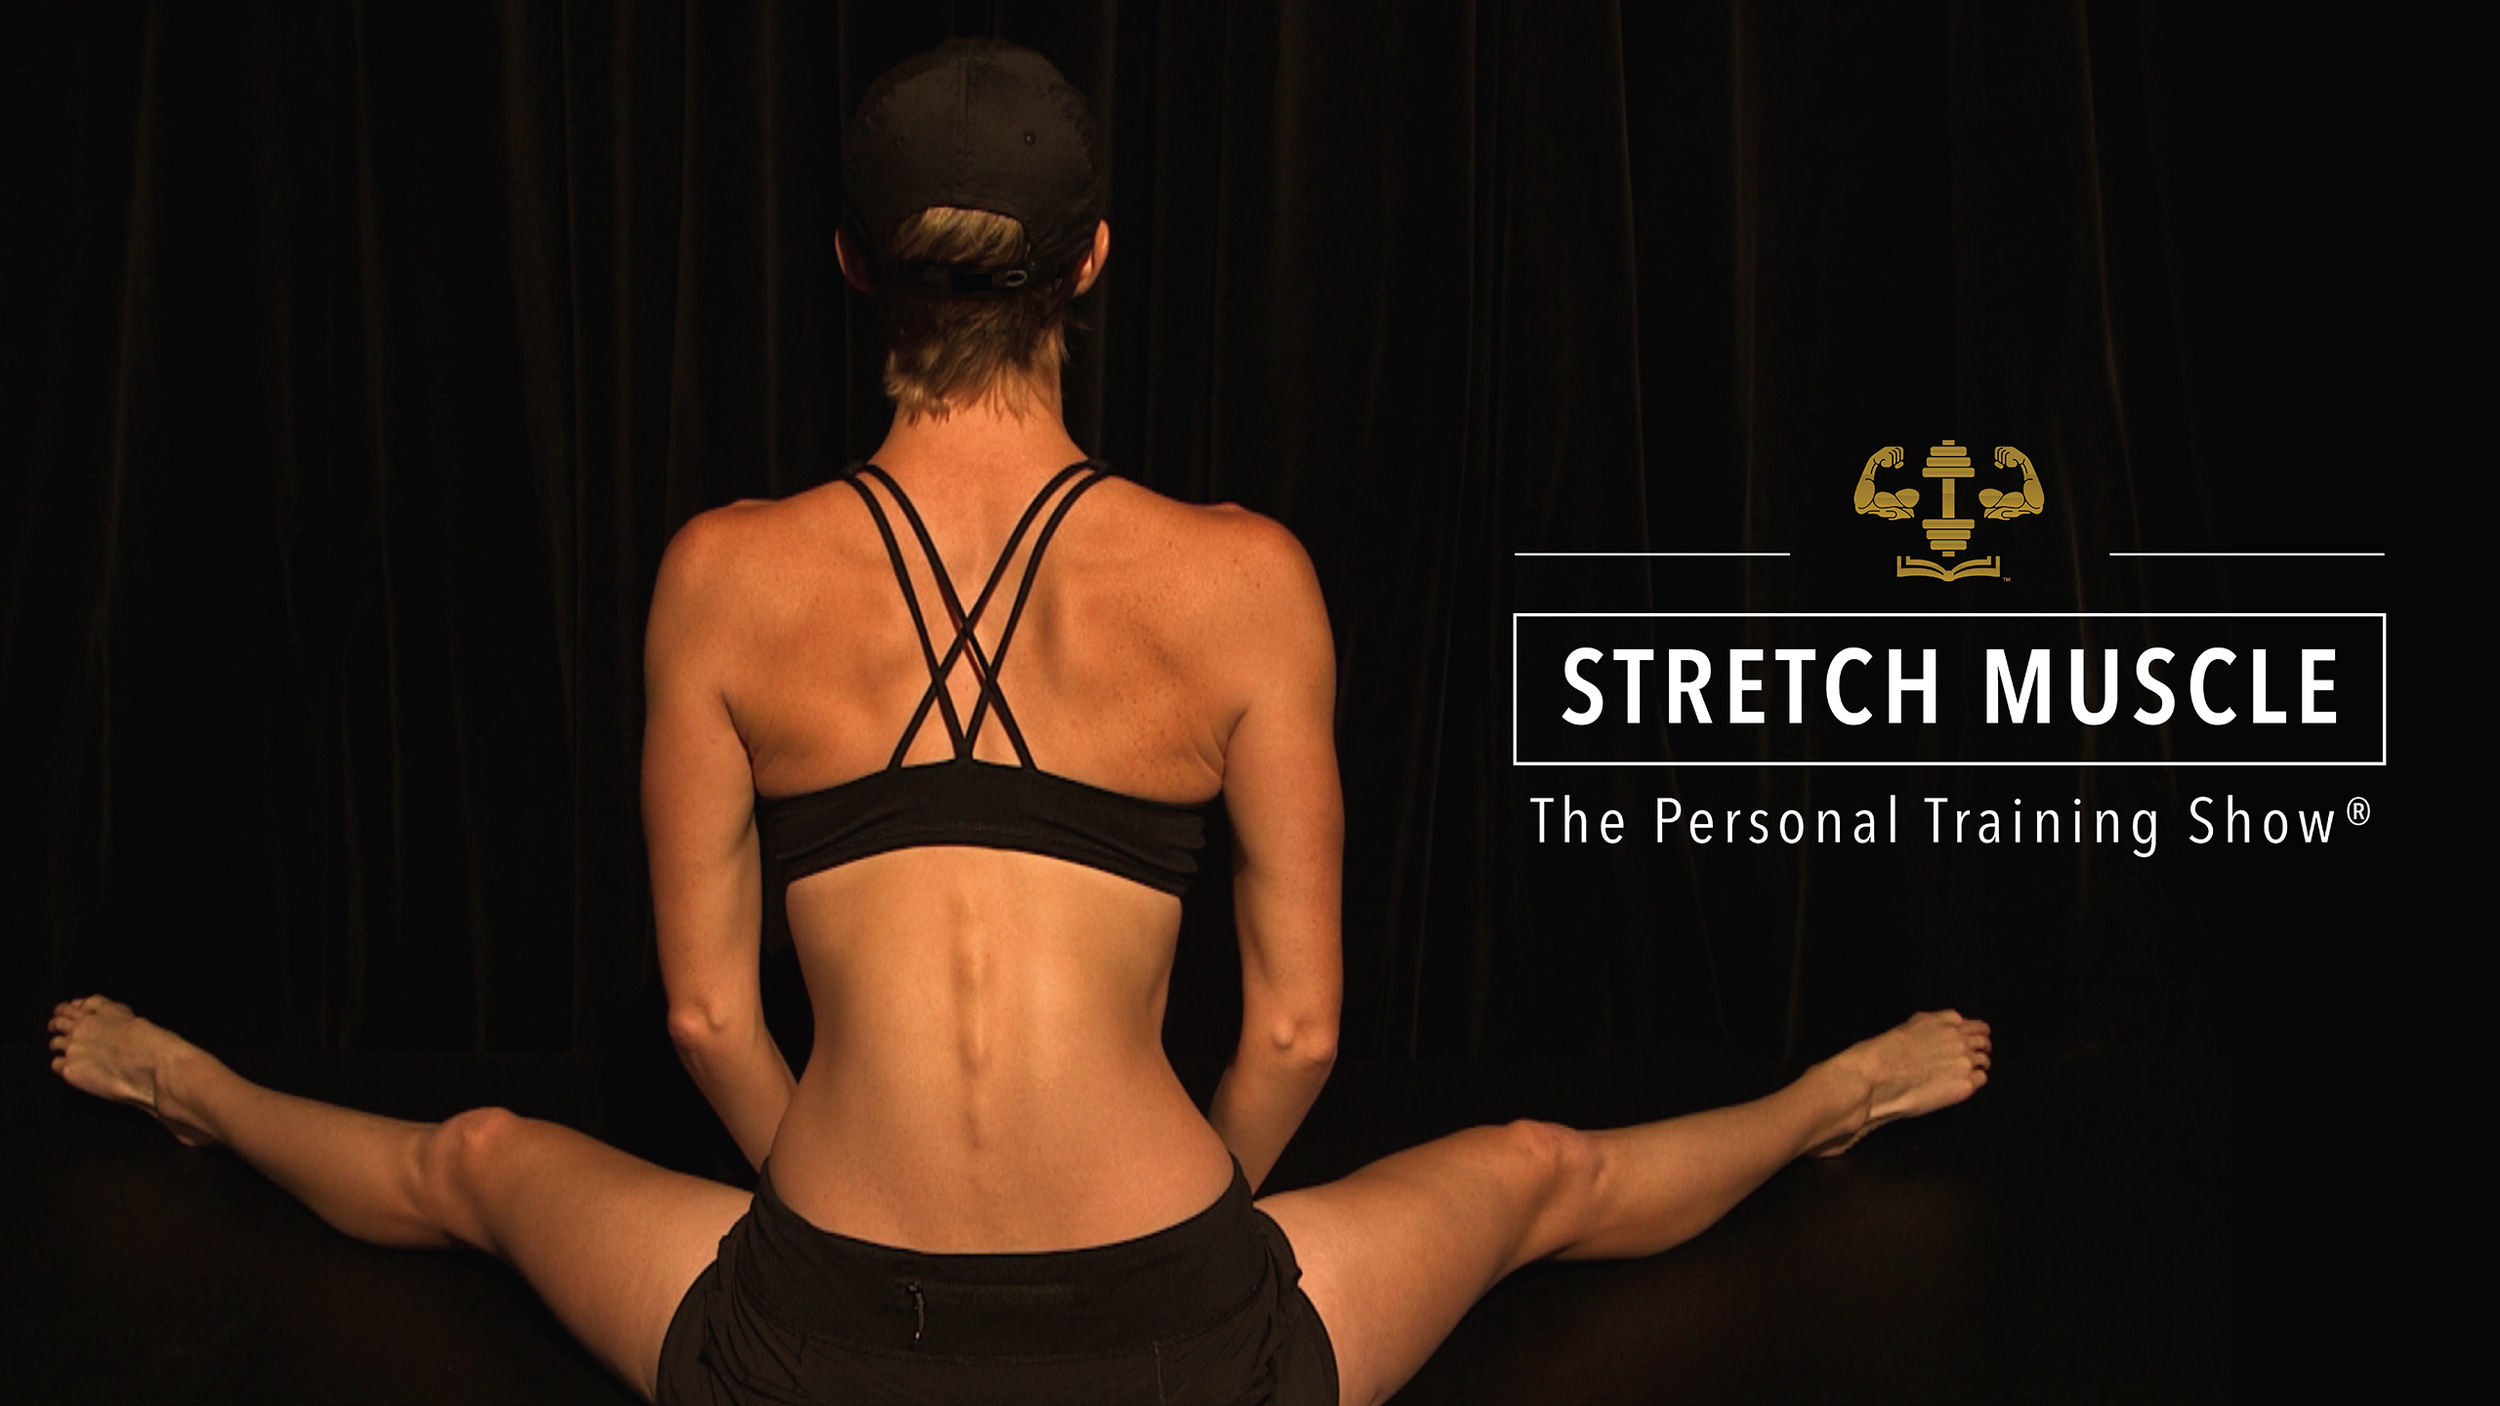 Stretch Muscle